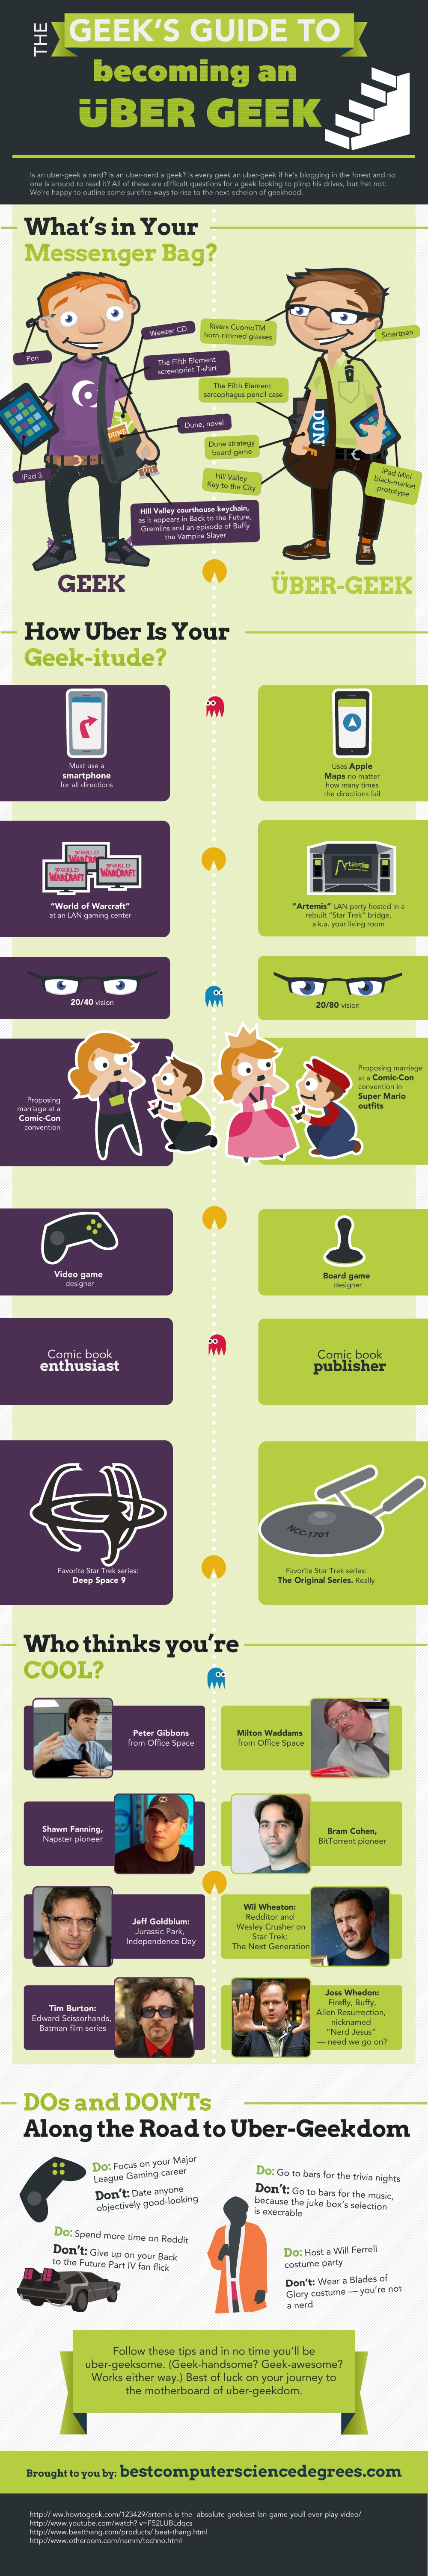 Infographic: The Geek's Guide to Becoming an Uber-Geek